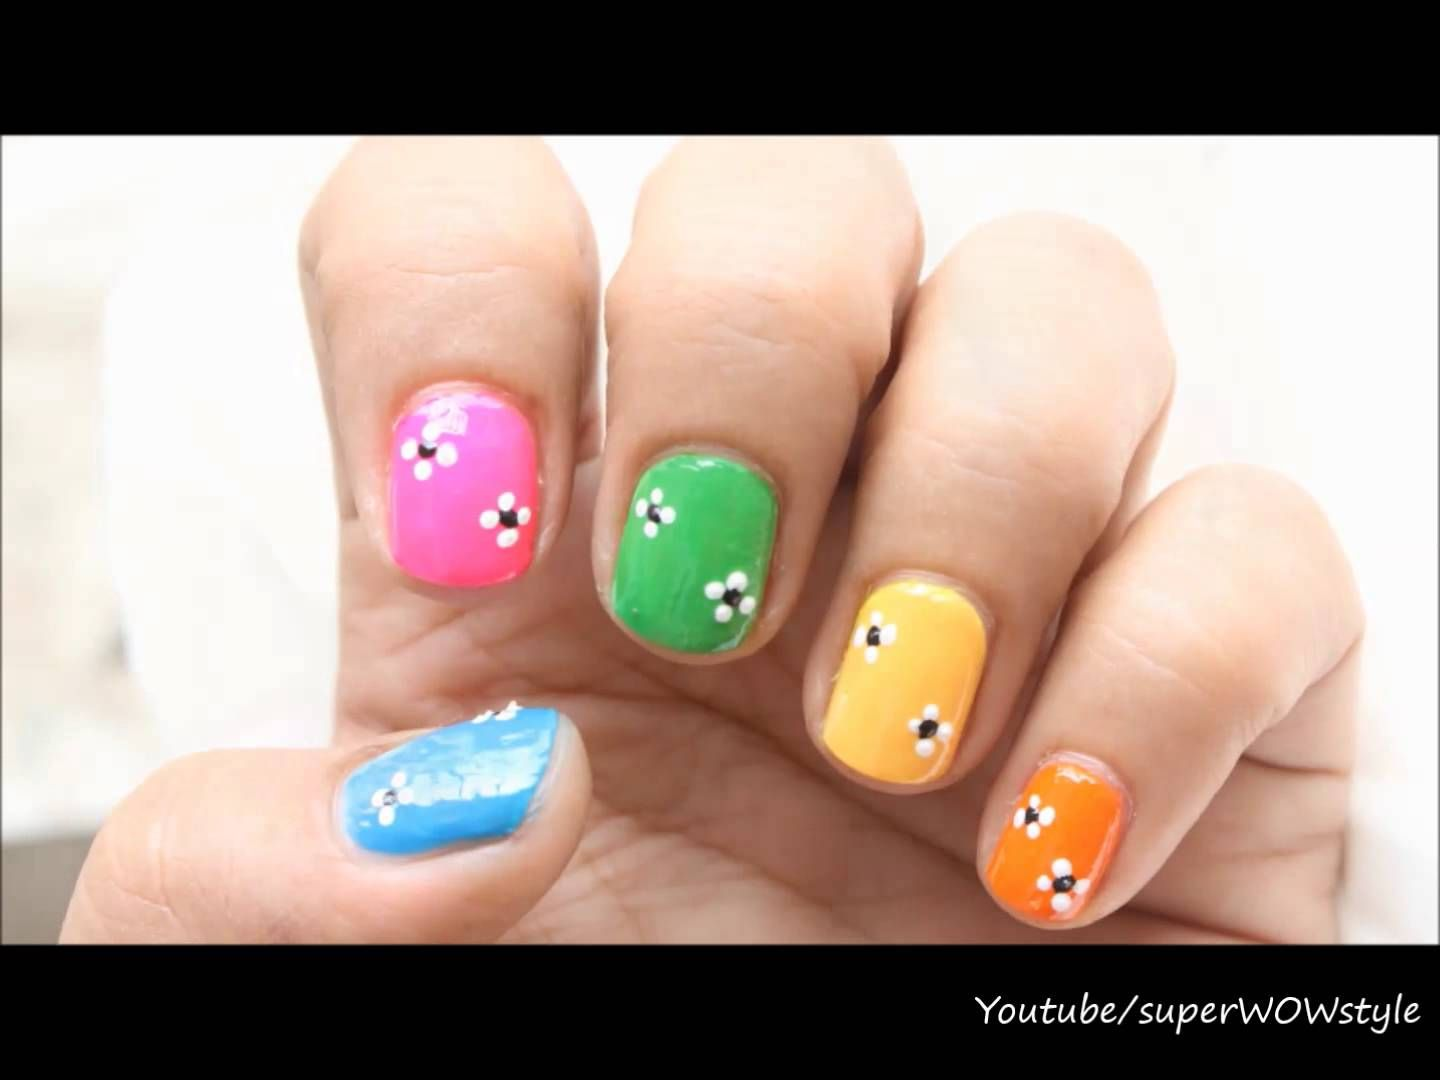 Easy Nail Designs For Kids Beginners Nail Art Using Toothpick Nail Art For Kids Simple Nail Designs Kids Nail Designs